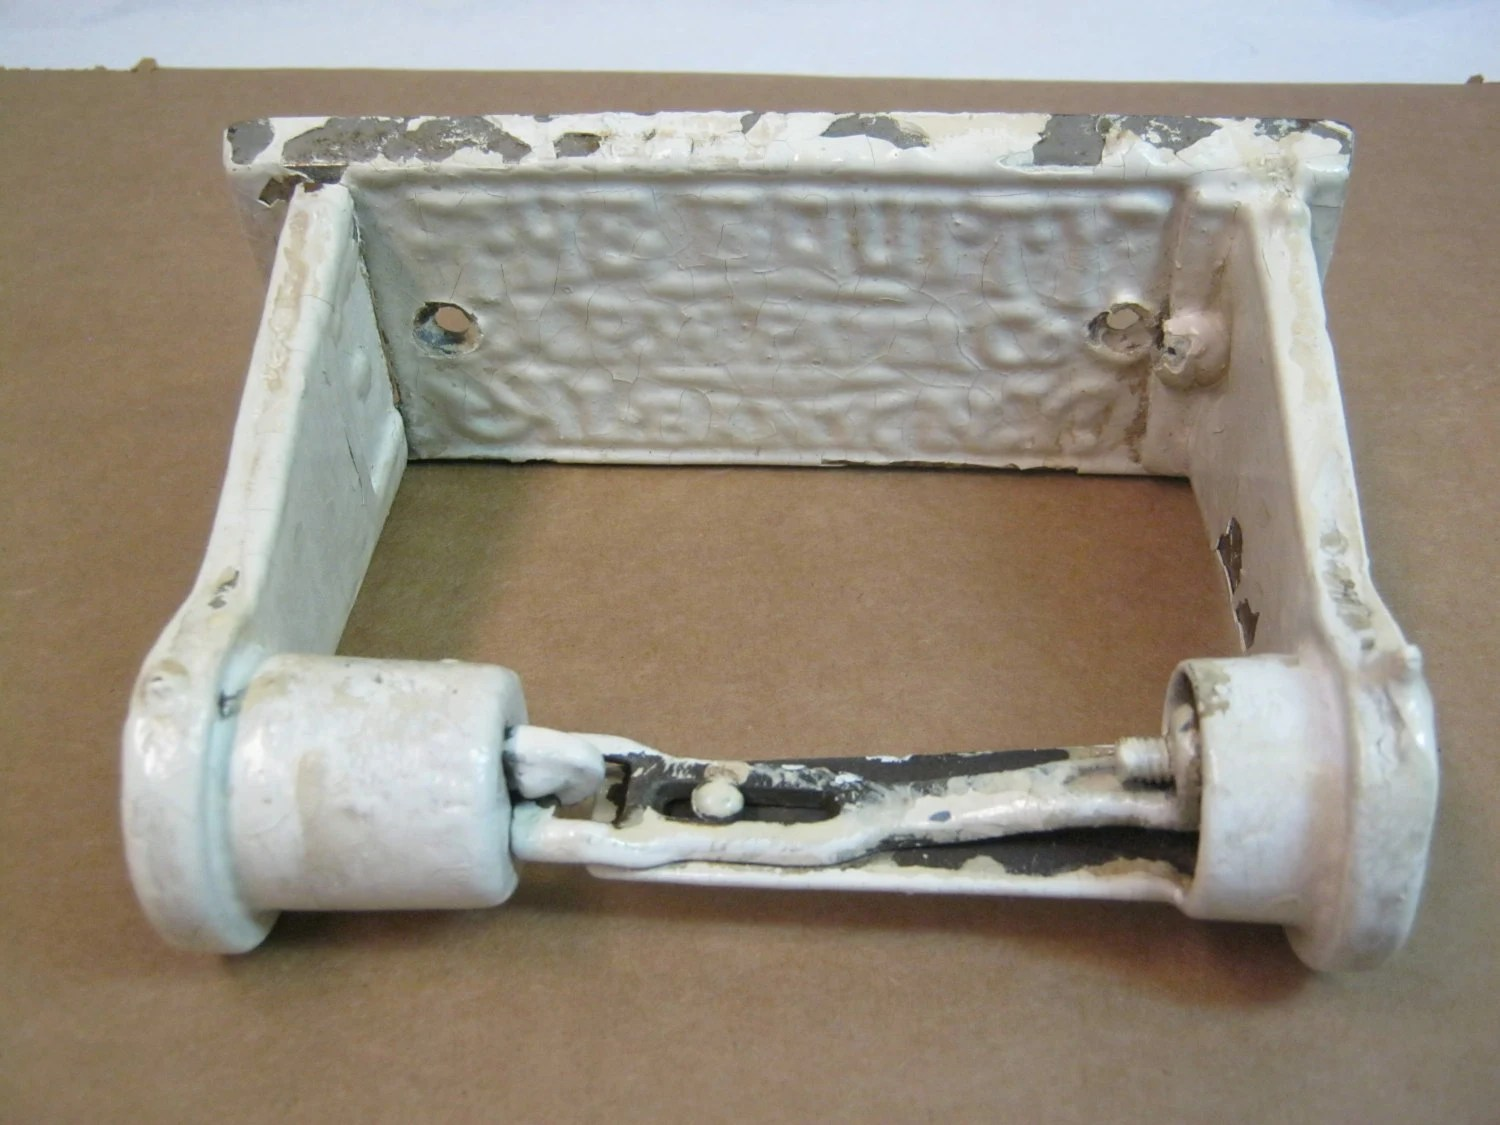 Antique Toilet Paper Dispenser Antique Toilet Paper Holder 39the Equity 39 Apw Paper Co